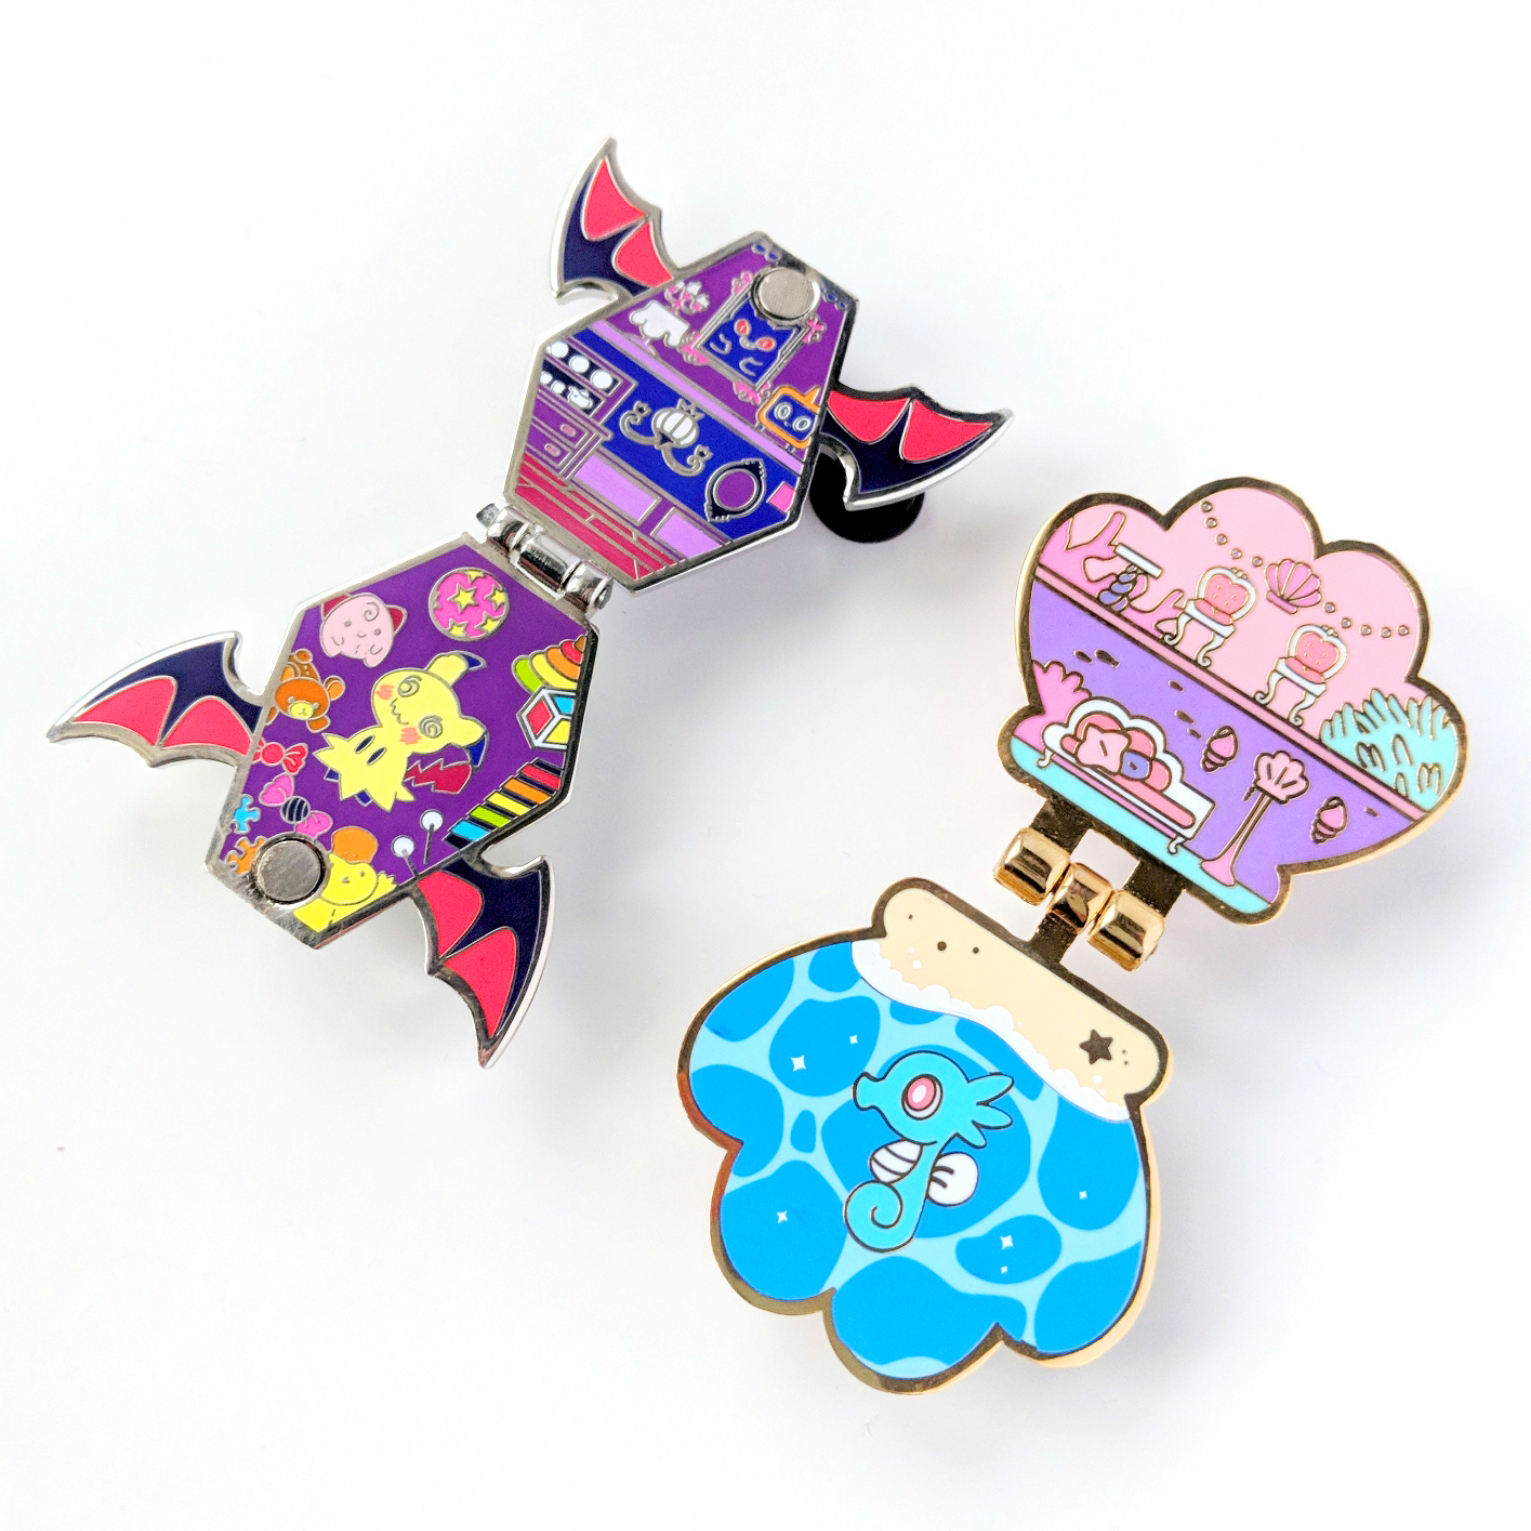 Mash-up parody pin of Pokemon and Polly Pocket